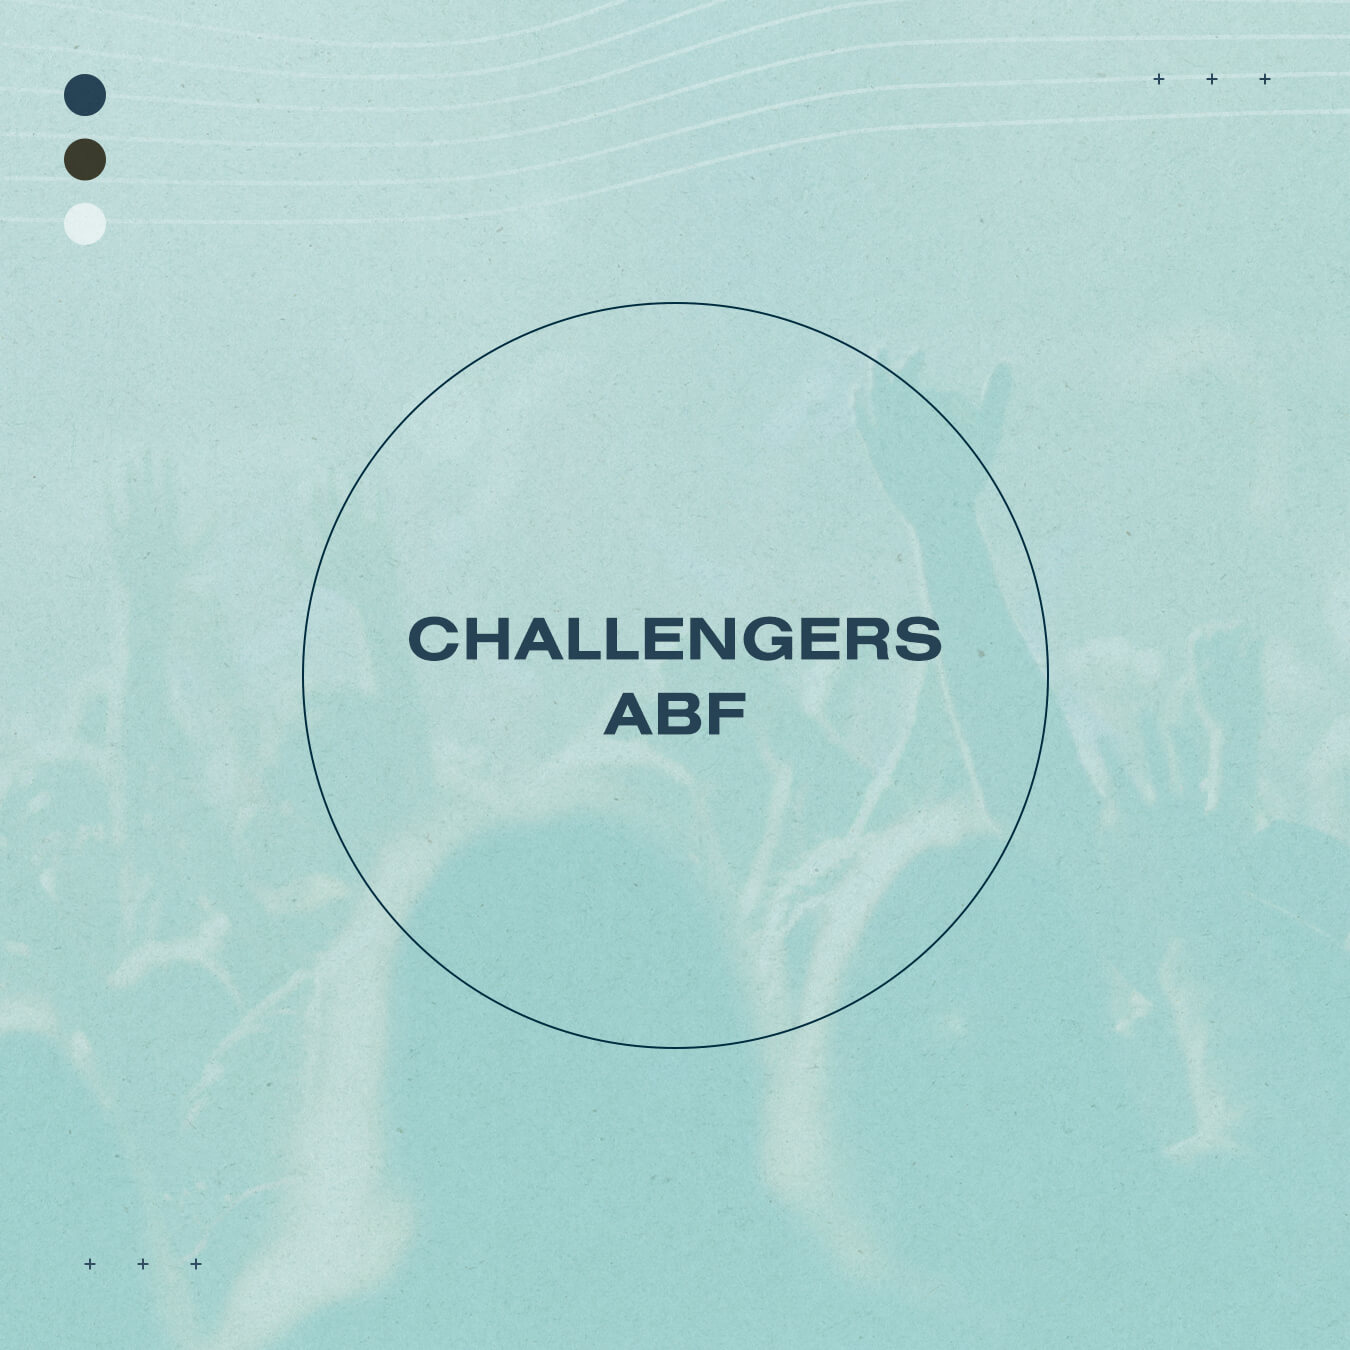 challengers abf